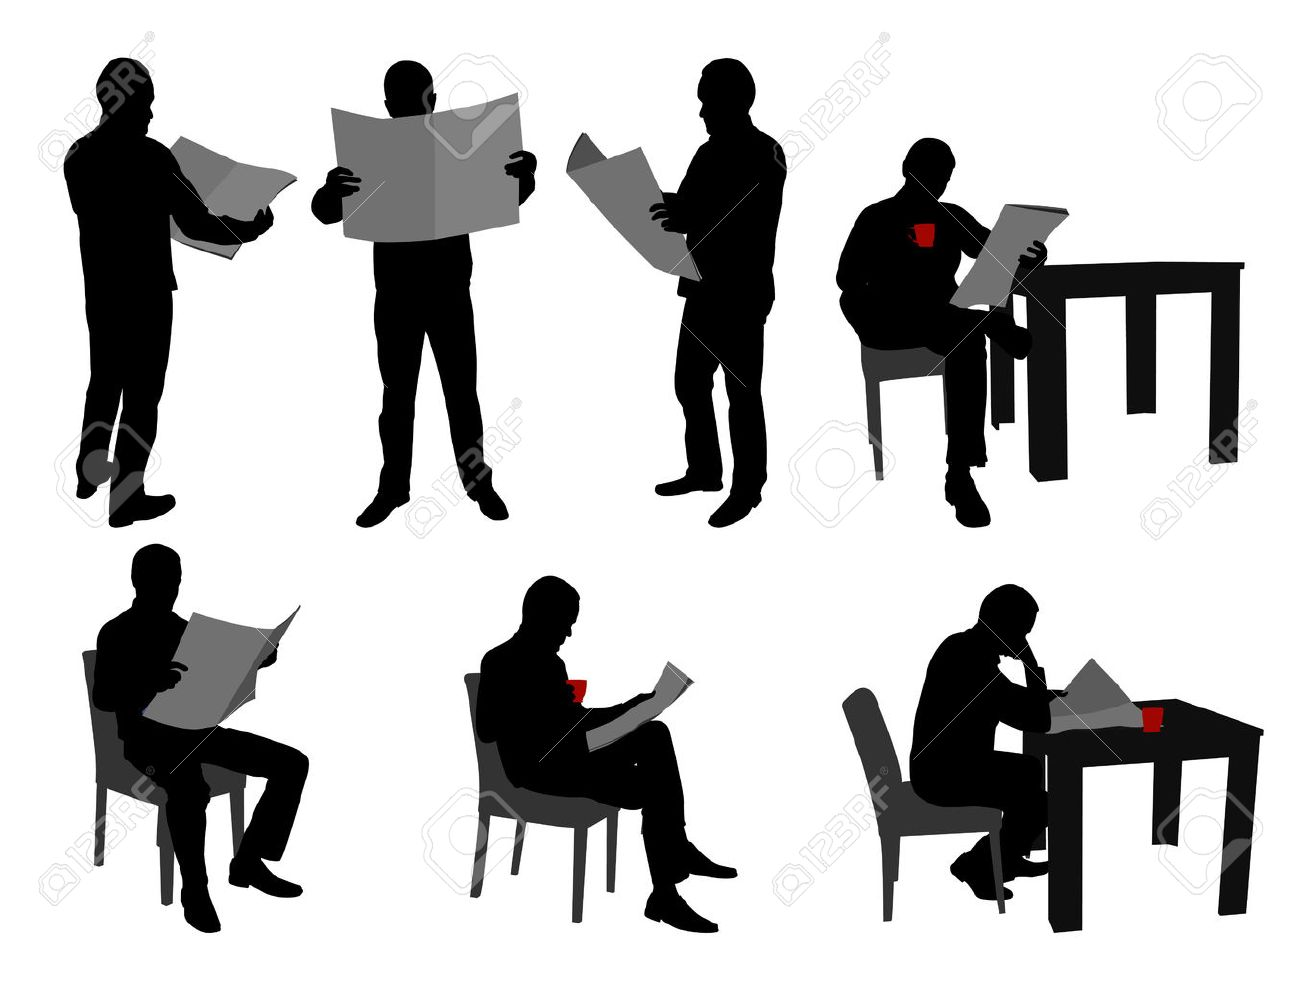 man reading newspapers silhouettes - vector - 24806613